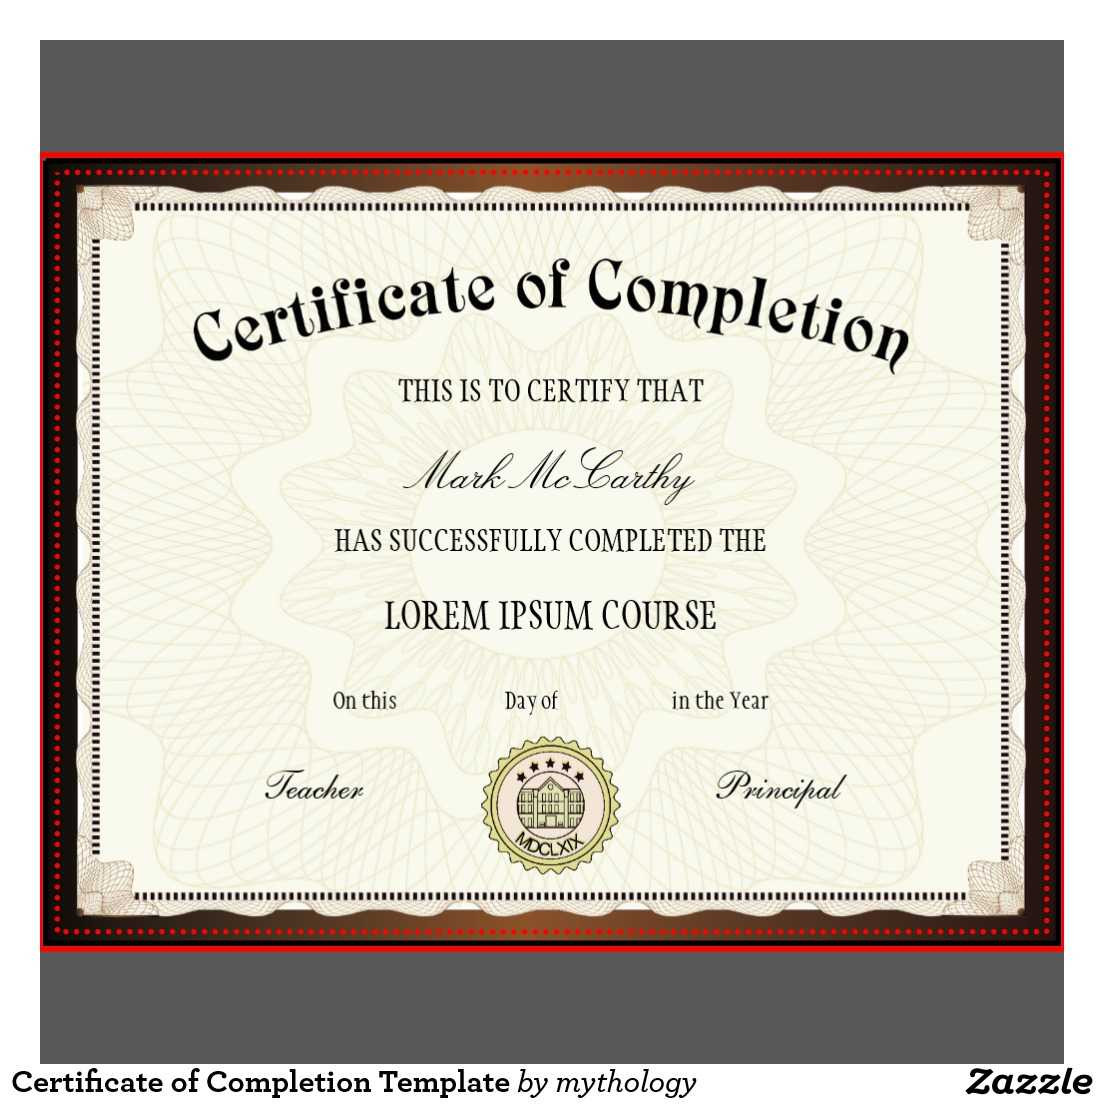 Free Printable Certificates | Certificate Templates Within Certificate Of Completion Template Free Printable